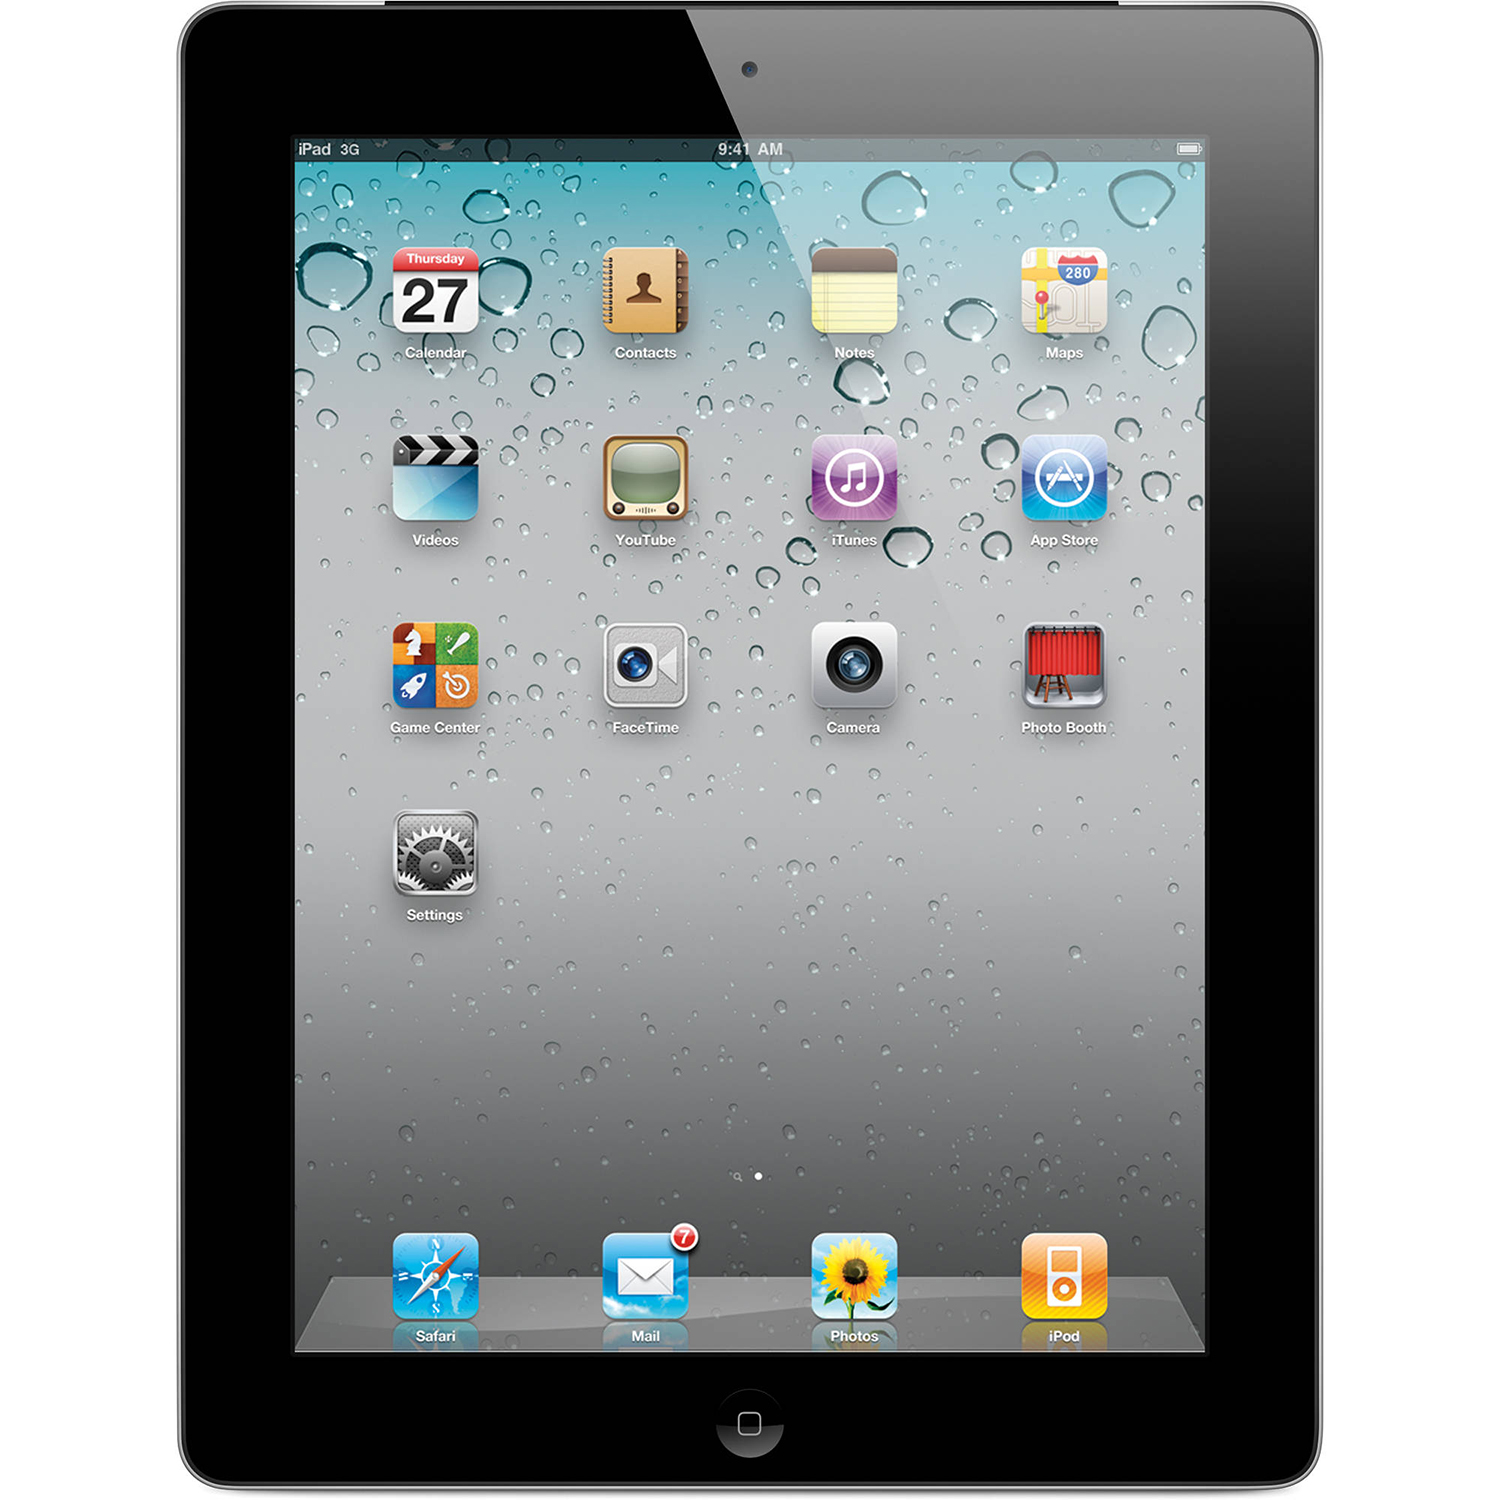 Refurbished Apple iPad 2 2nd generation with Wi-Fi+3G 32GB Tablet - Black - AT&T - MC774LLA